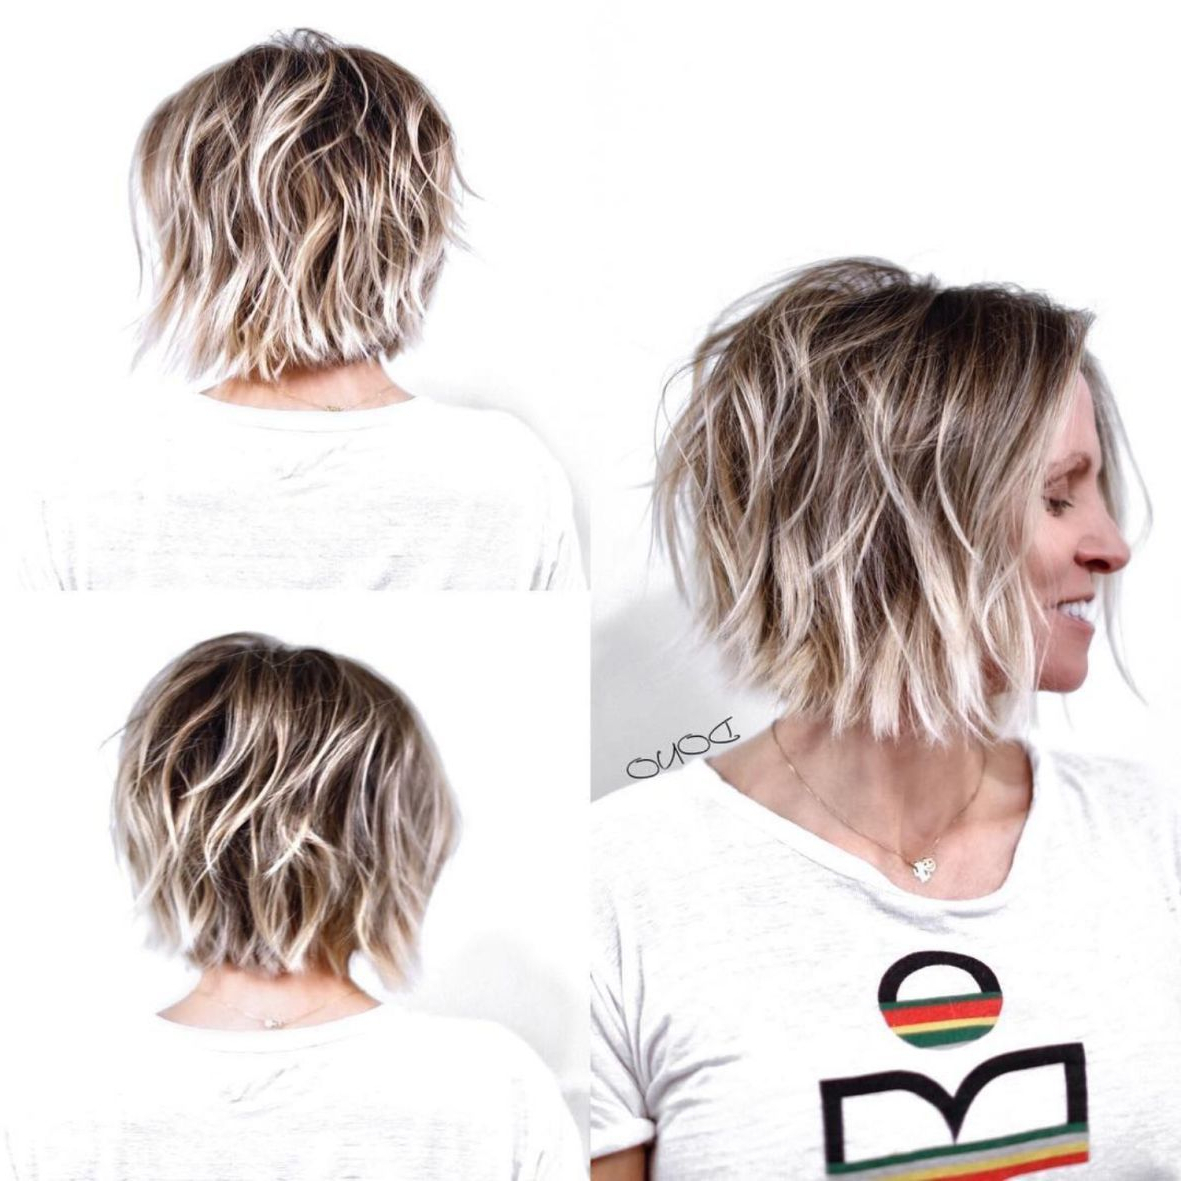 70 Overwhelming Ideas For Short Choppy Haircuts In 2019 Pertaining To Widely Used Curly Bronde Haircuts With Choppy Ends (View 10 of 20)